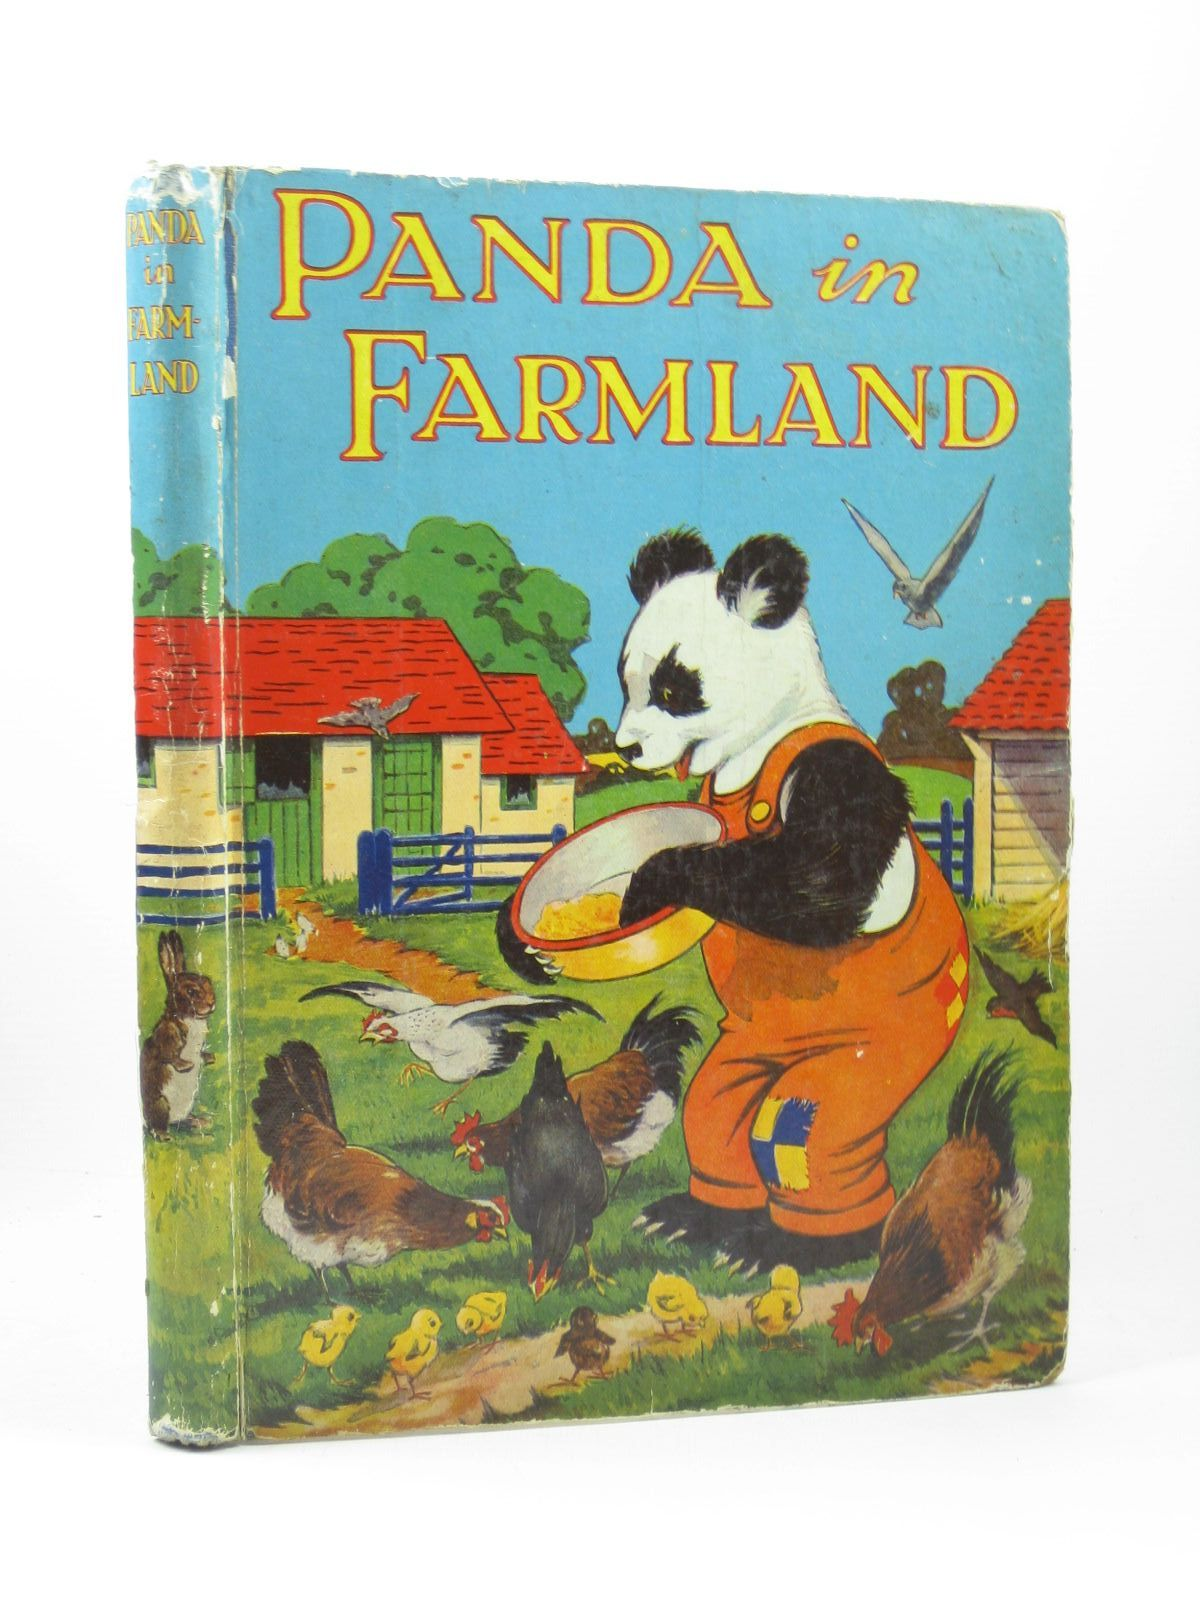 Photo of PANDA IN FARMLAND published by Juvenile Productions Ltd. (STOCK CODE: 1312392)  for sale by Stella & Rose's Books